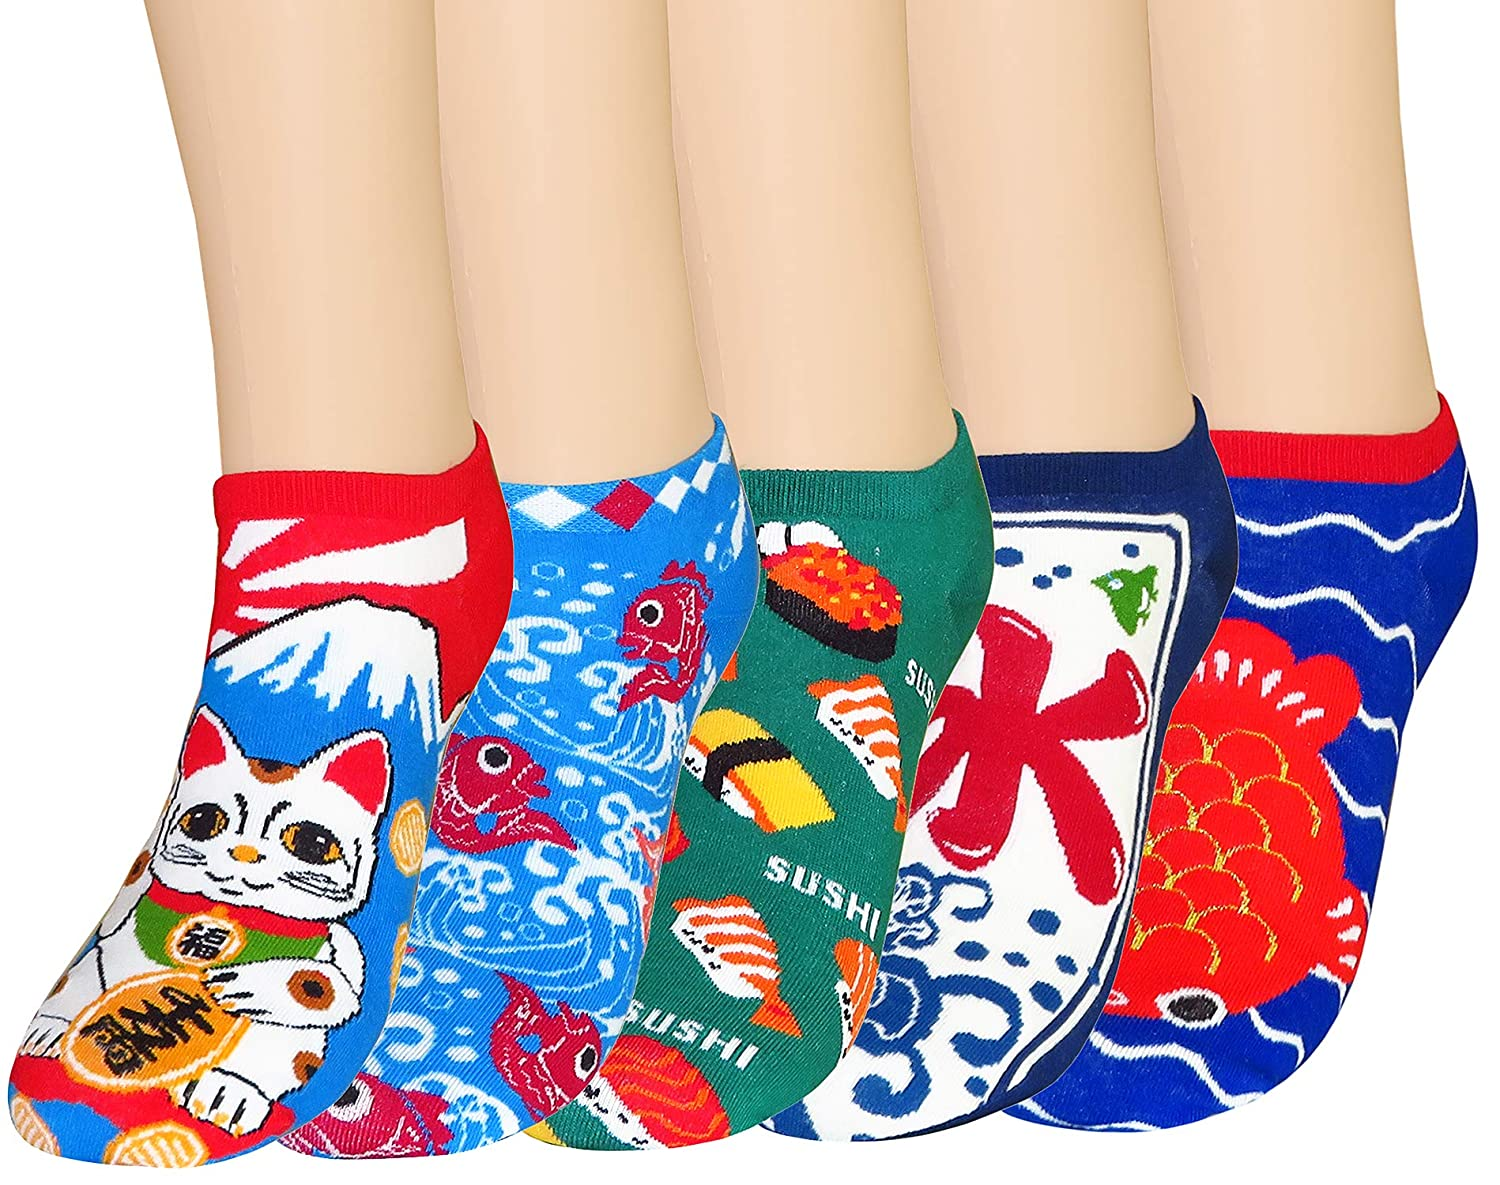 FULIER Women's Low Cut Cute Colorful Design Cotton Ankle Liner Socks